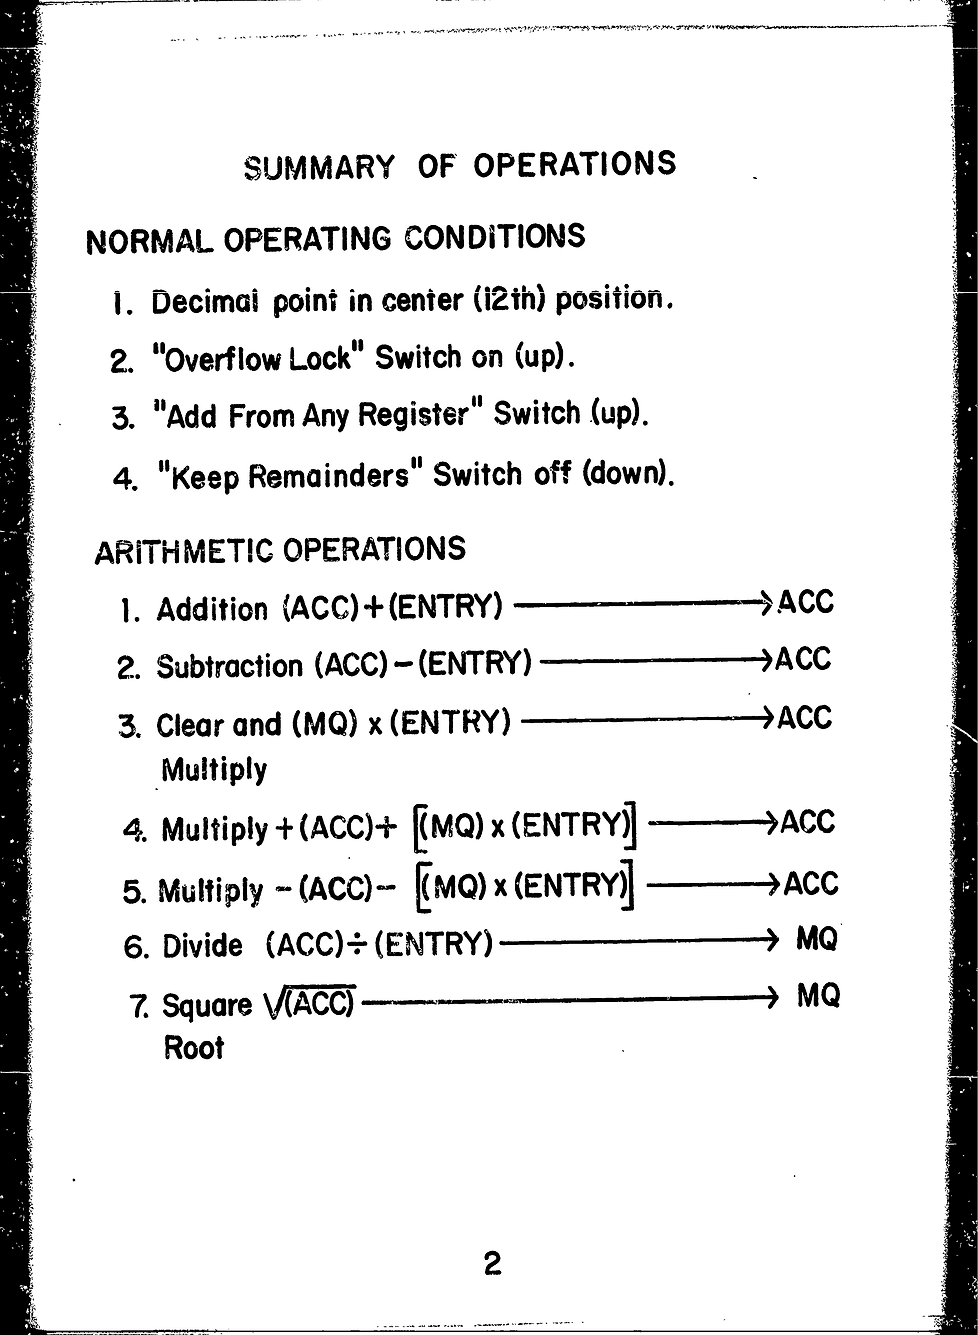 WYLE Instruction_Page_090_Image_0001.tif